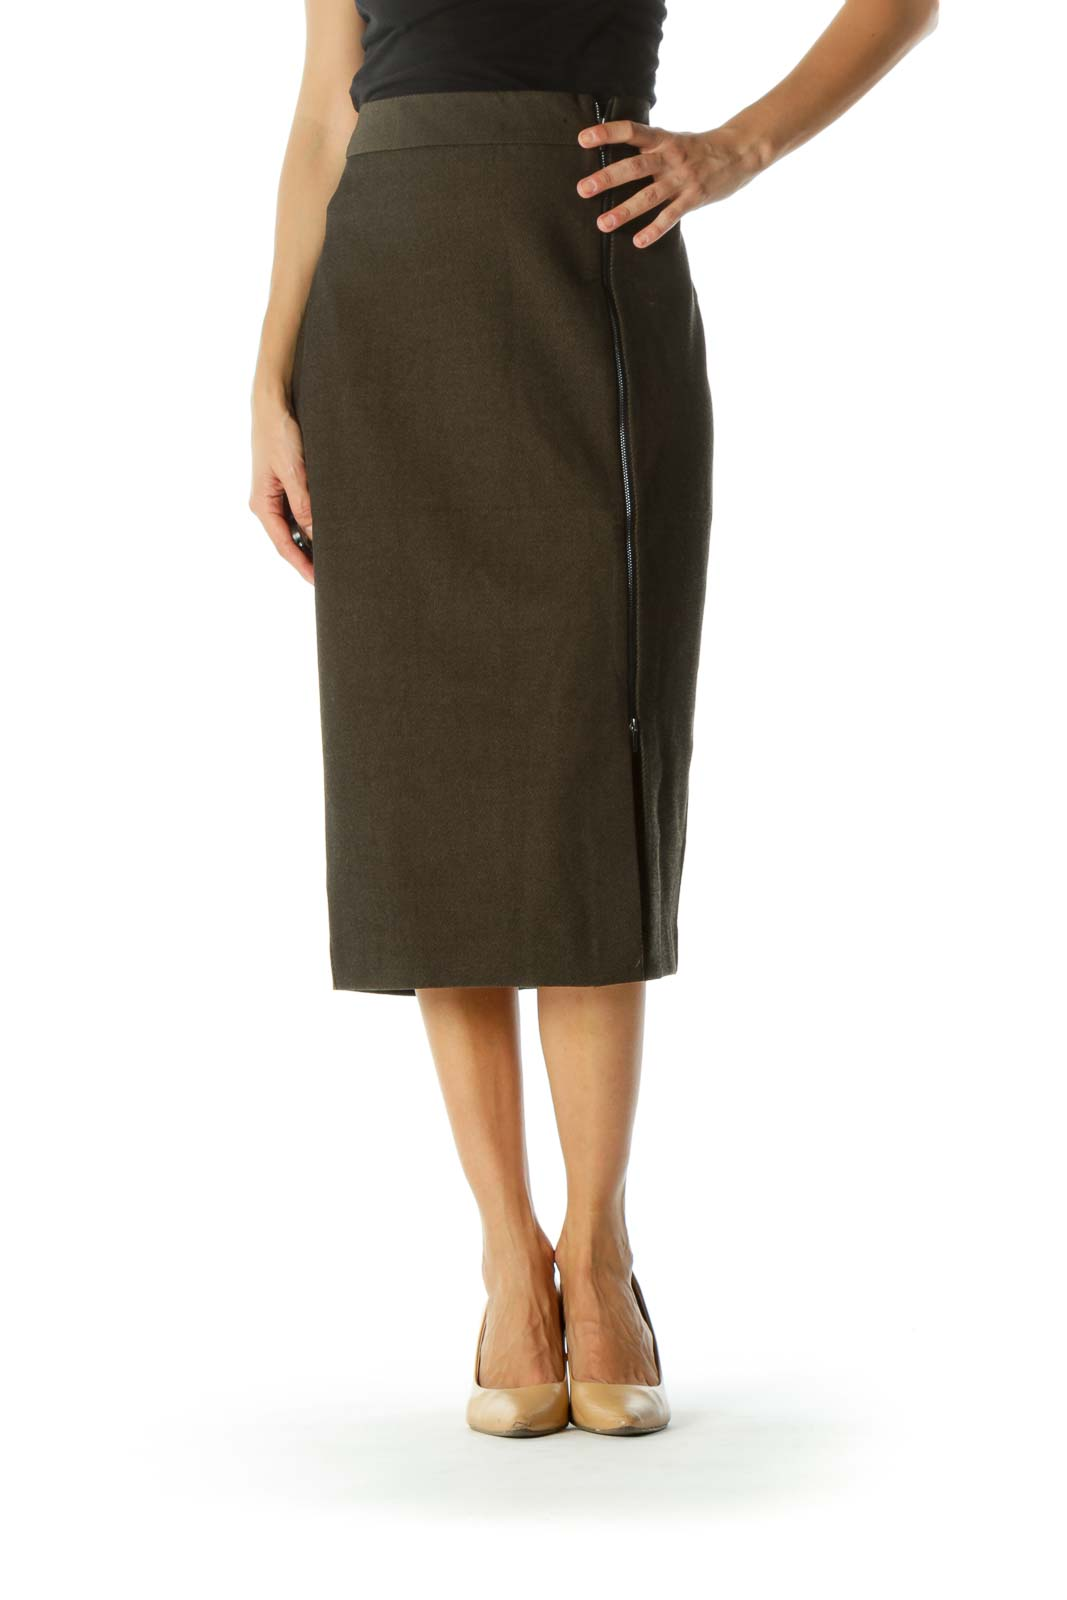 Black Olive Green Zipper Detail Pencil Textured Midi Skirt